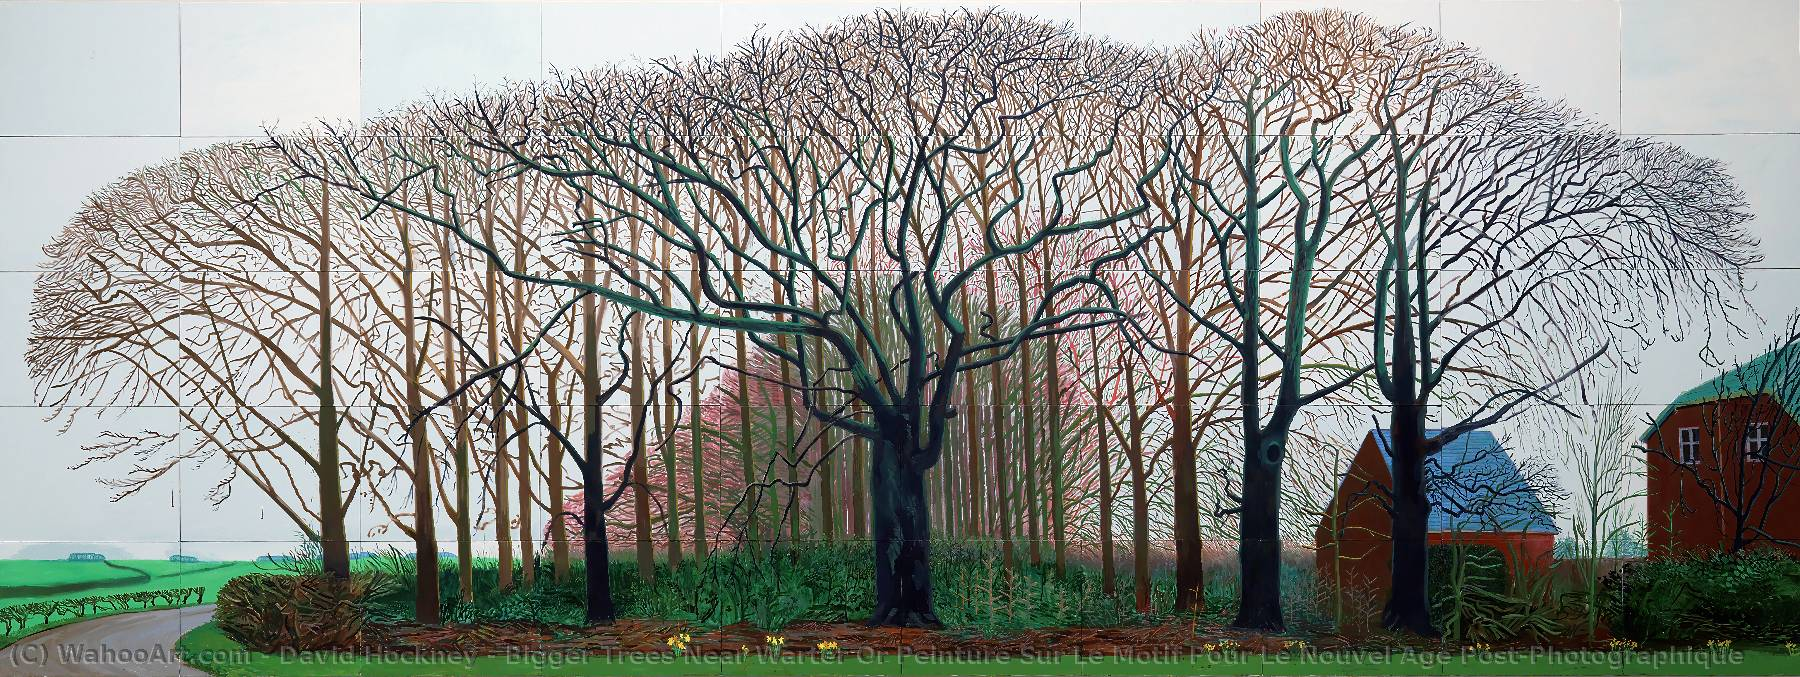 | Bigger Trees Near Warter Or Peinture Sur Le Motif Pour Le Nouvel Age Post-Photographique by David Hockney | BuyPopArt.com